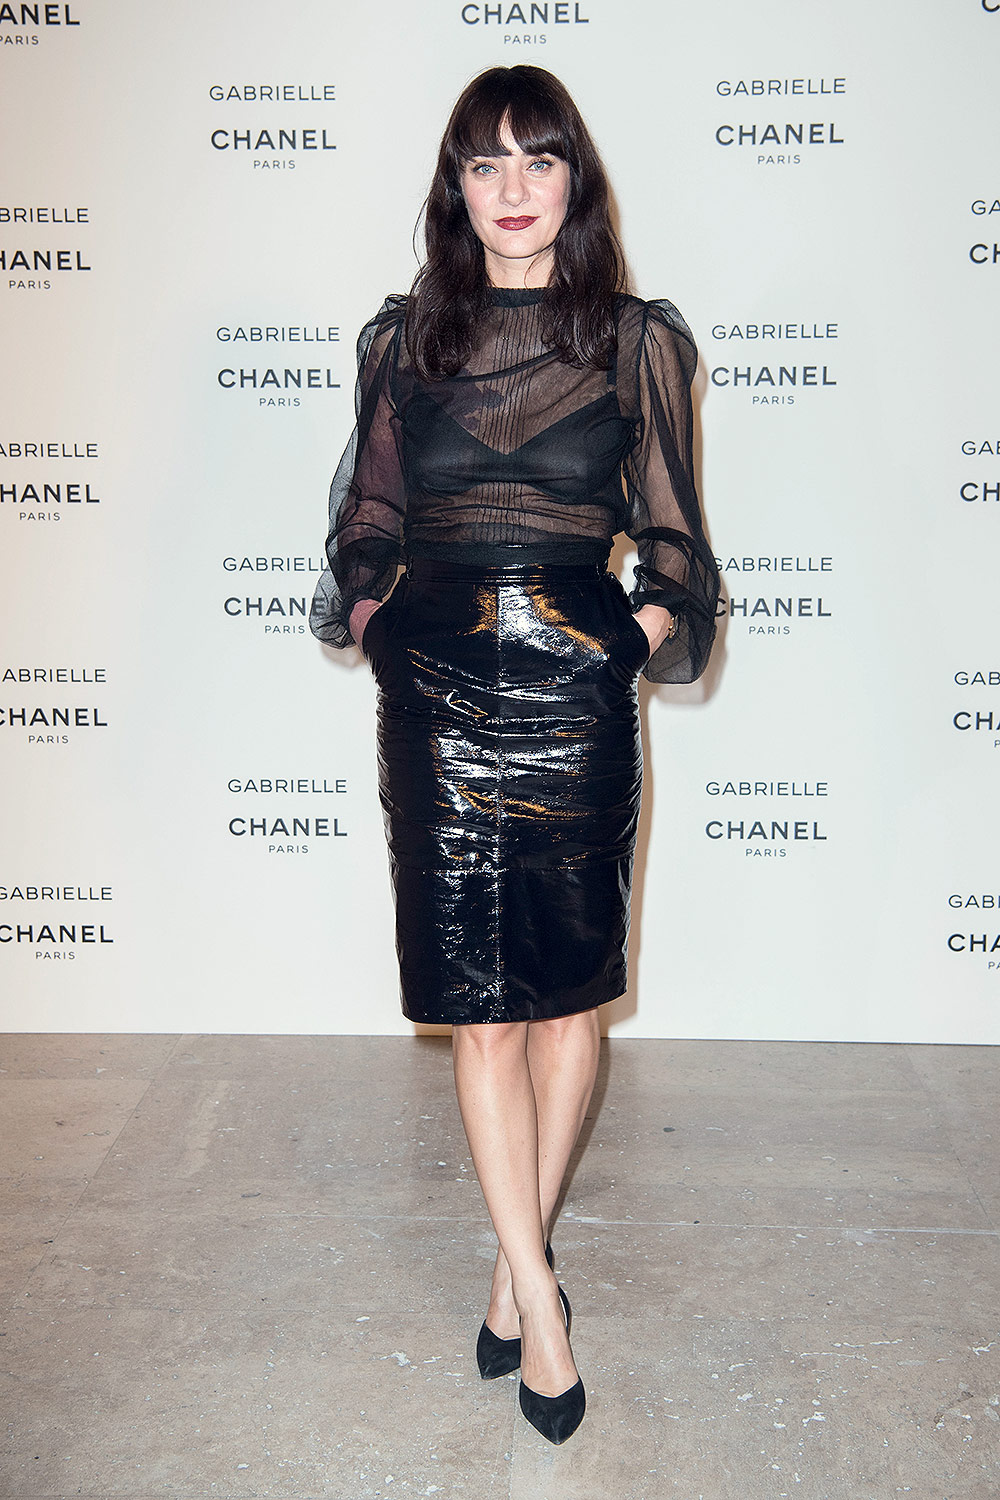 Lucia Pica attends Chanel Perfume Gabrielle Launch Party